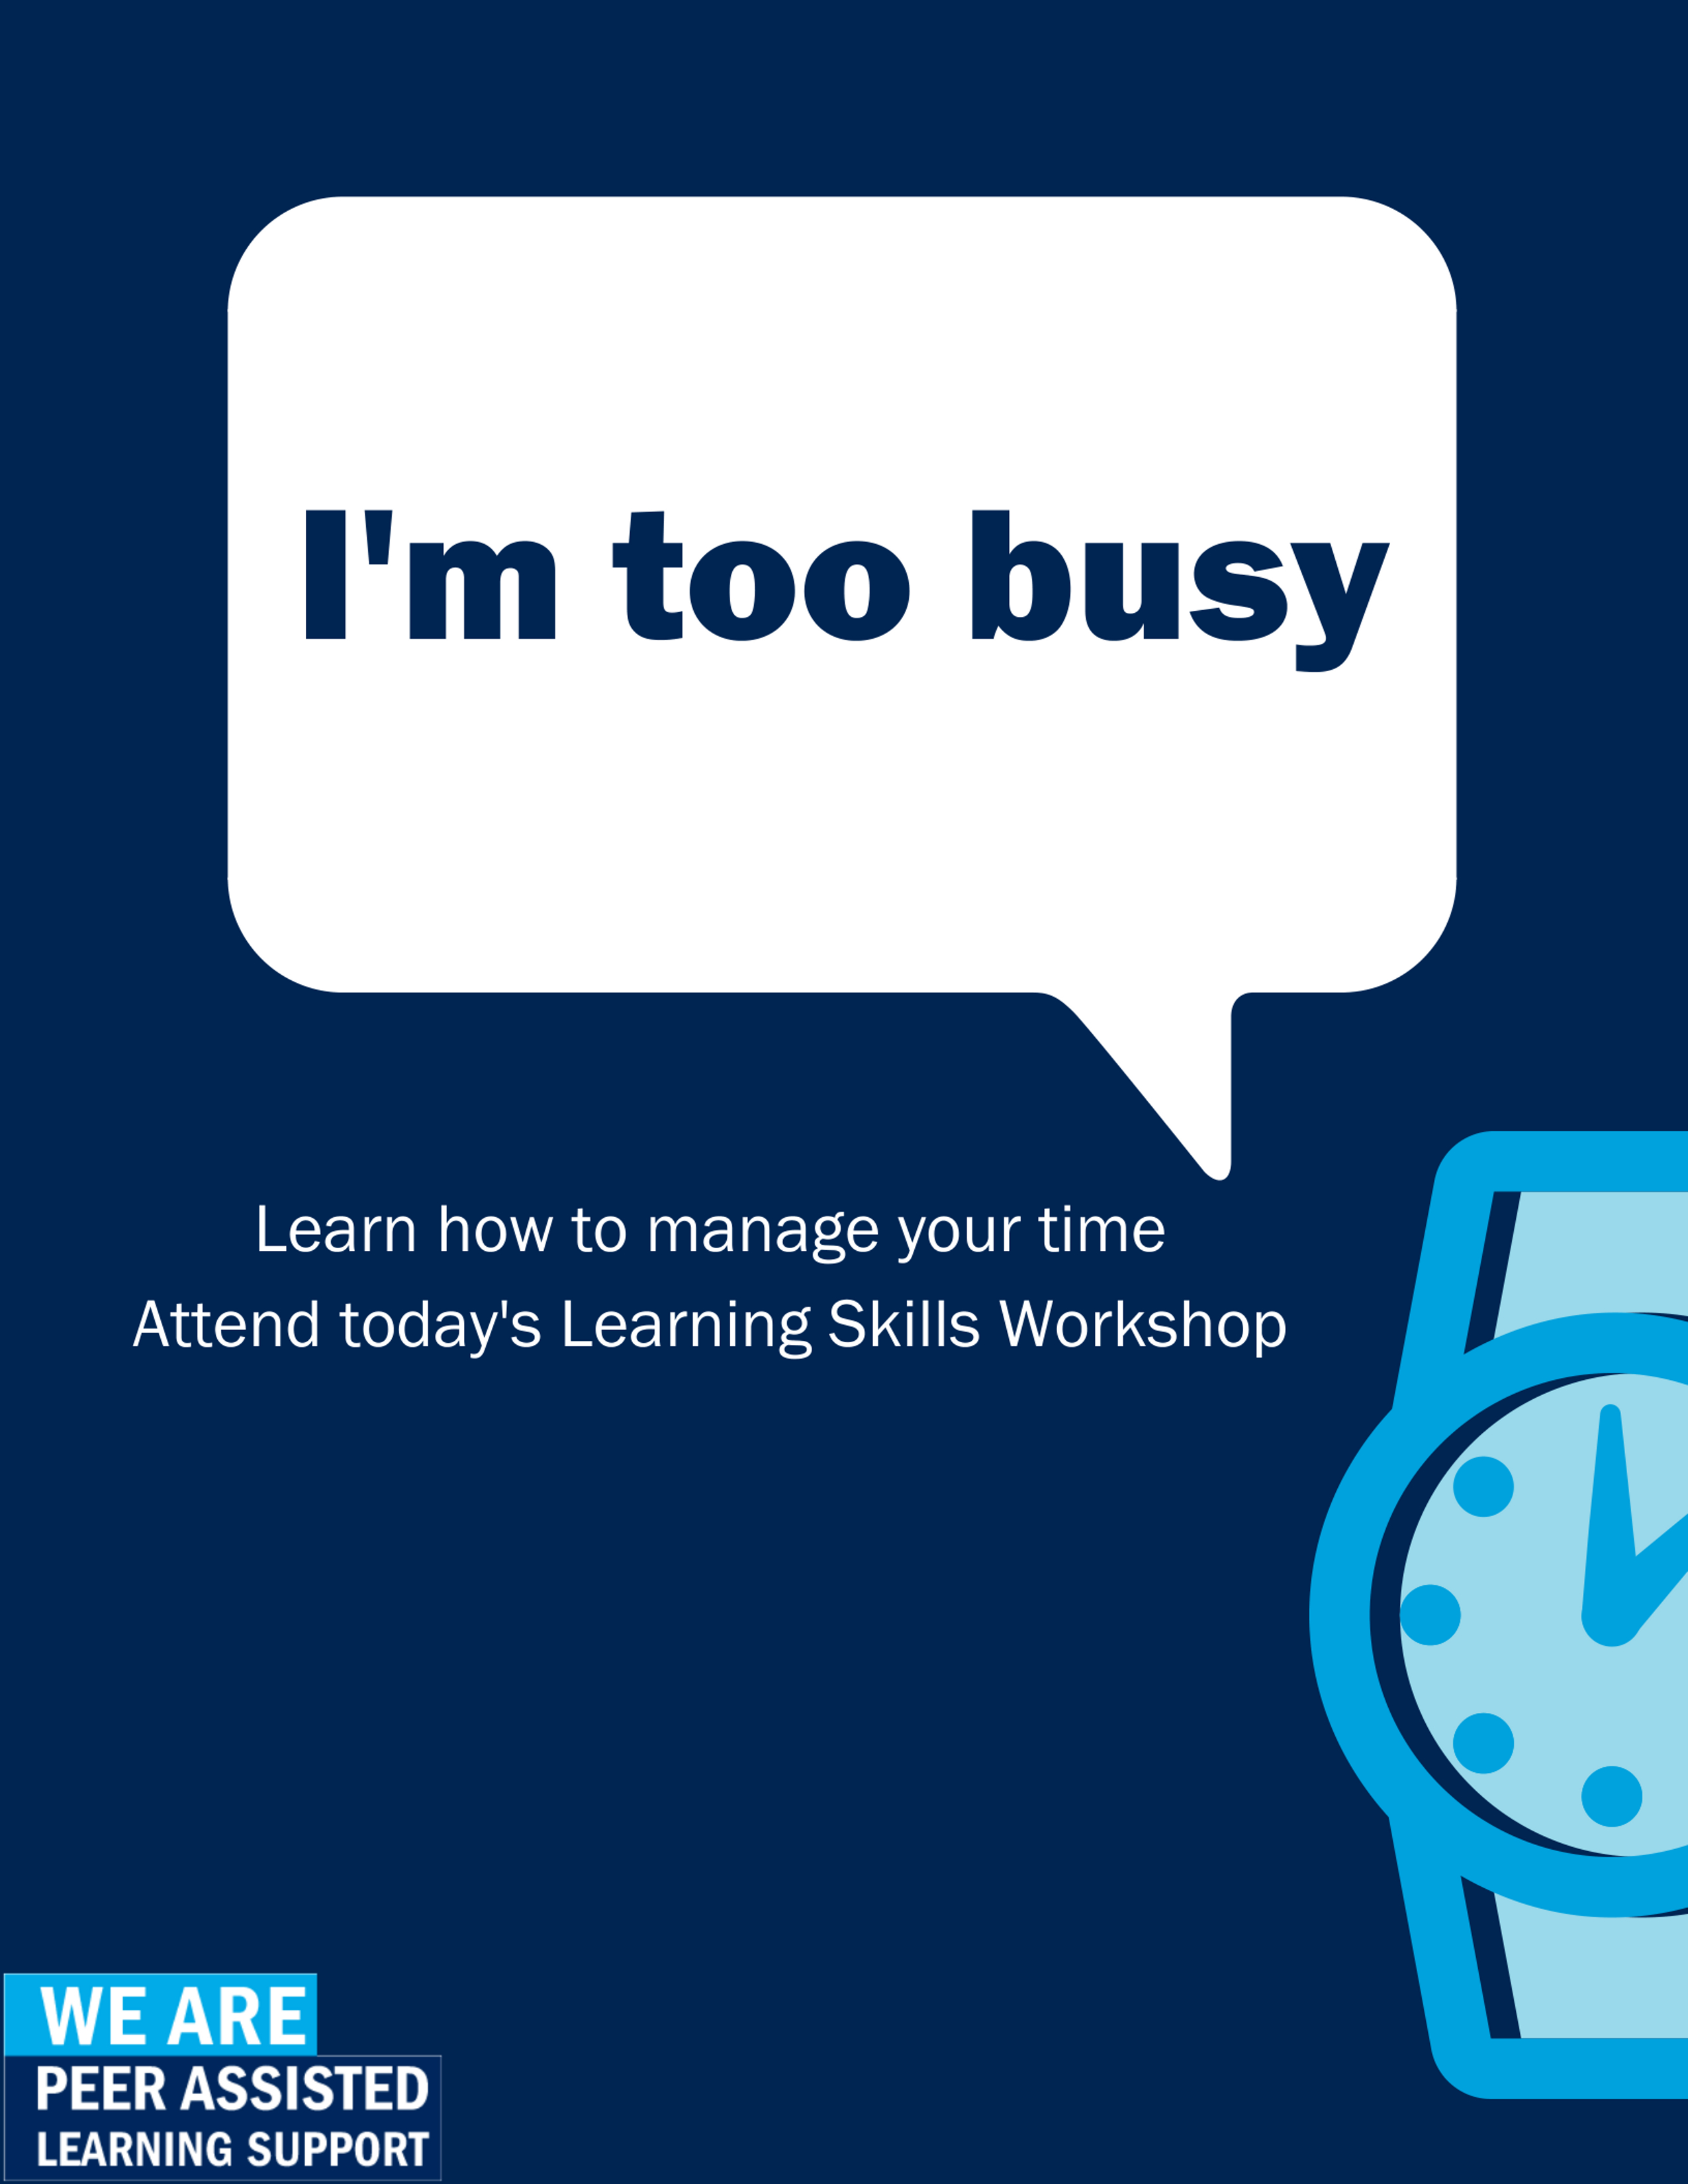 Learn some tips and tricks on how to take control of your time management!